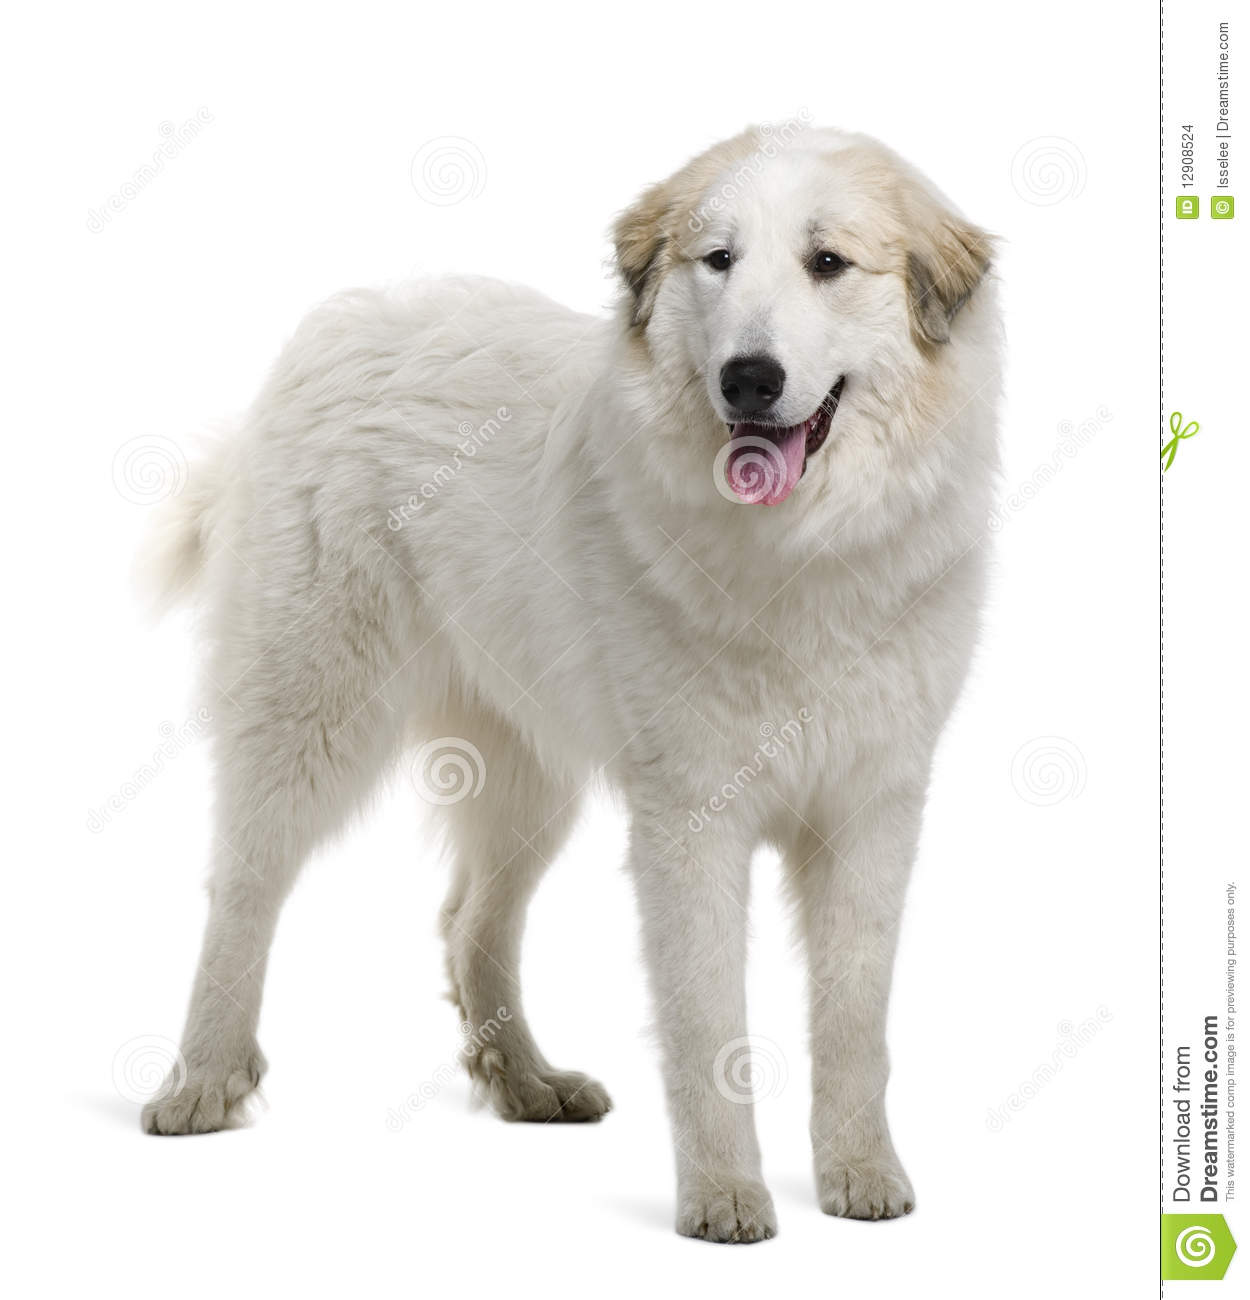 Pyrenean Mountain Dog Puppies Prices